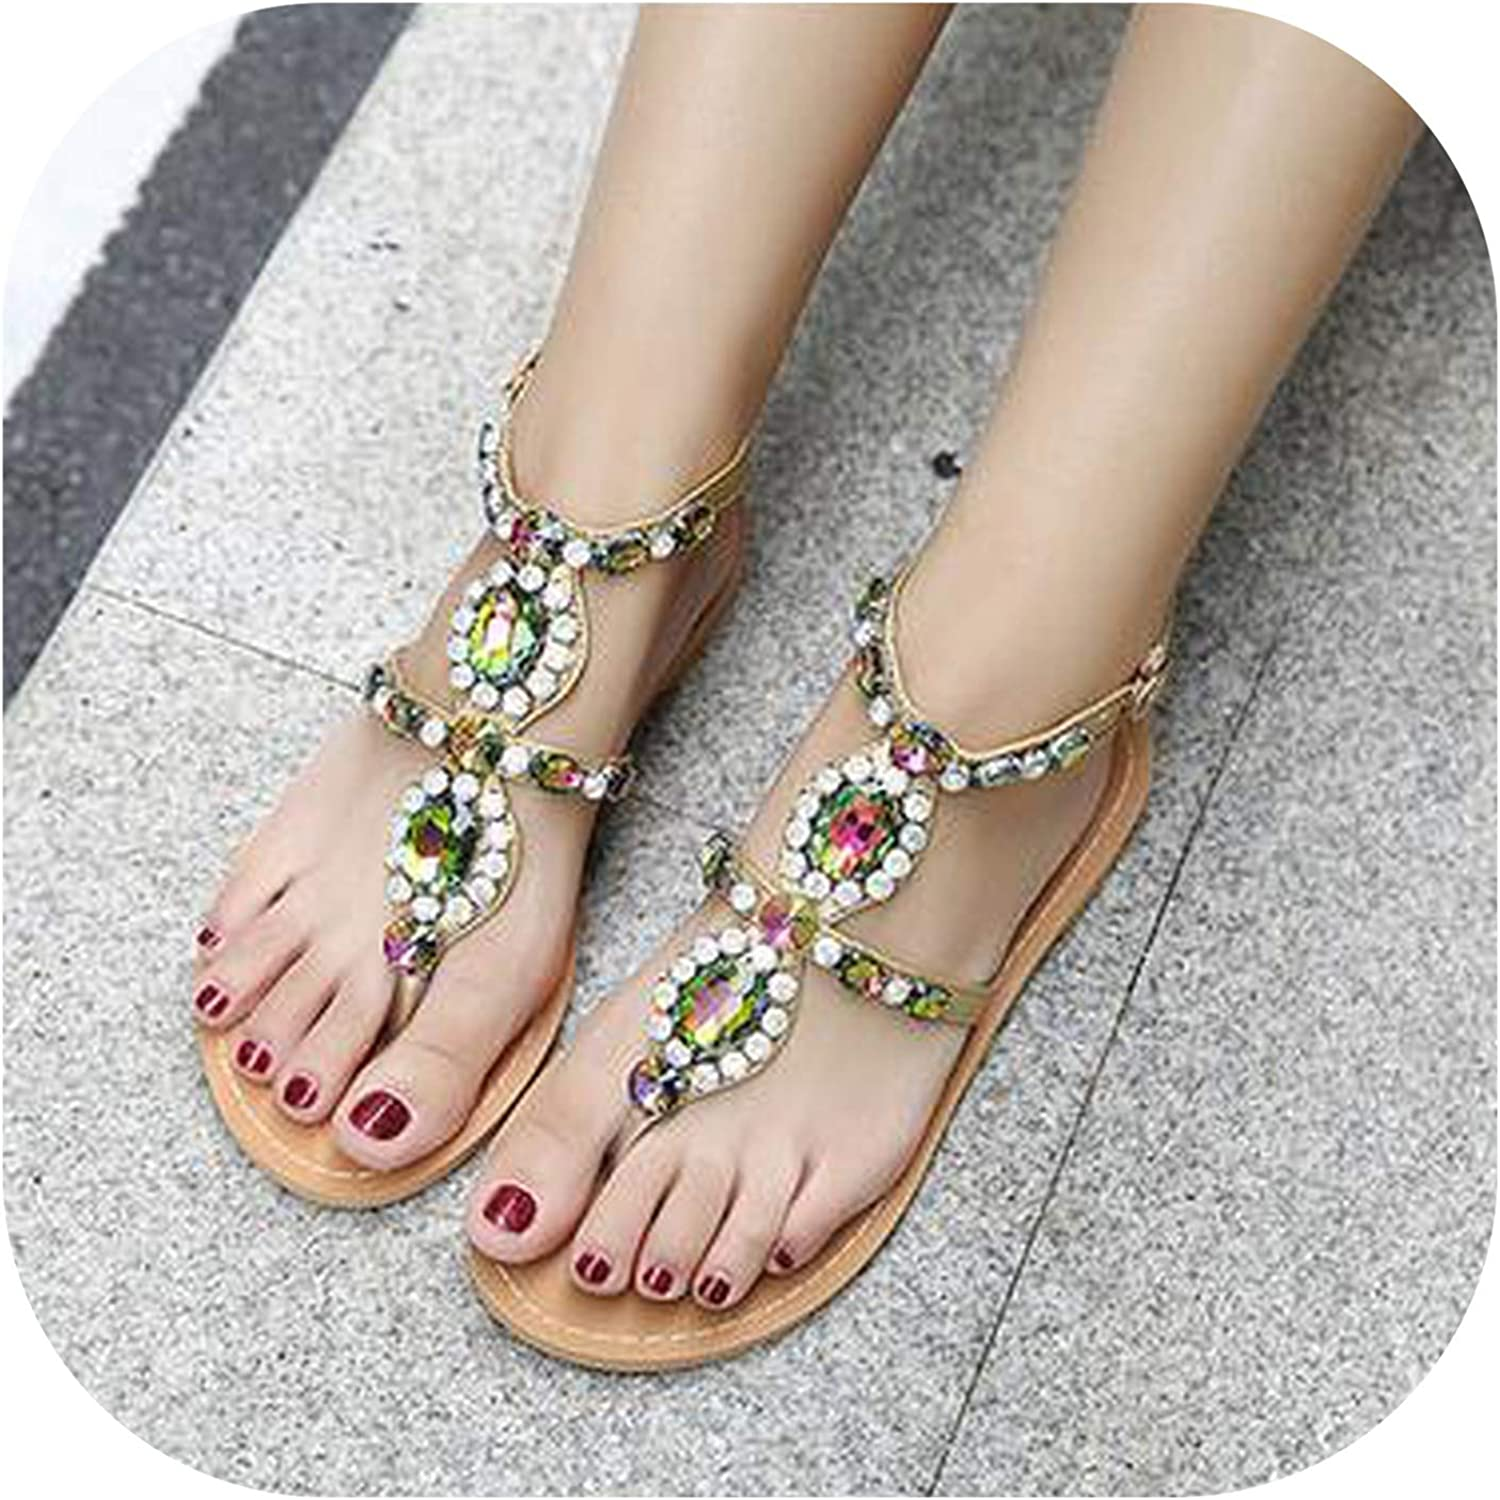 April With You Rhinestone Fashion Flat shoes Women Sandals Large Size Casual shoes Summers Sandals